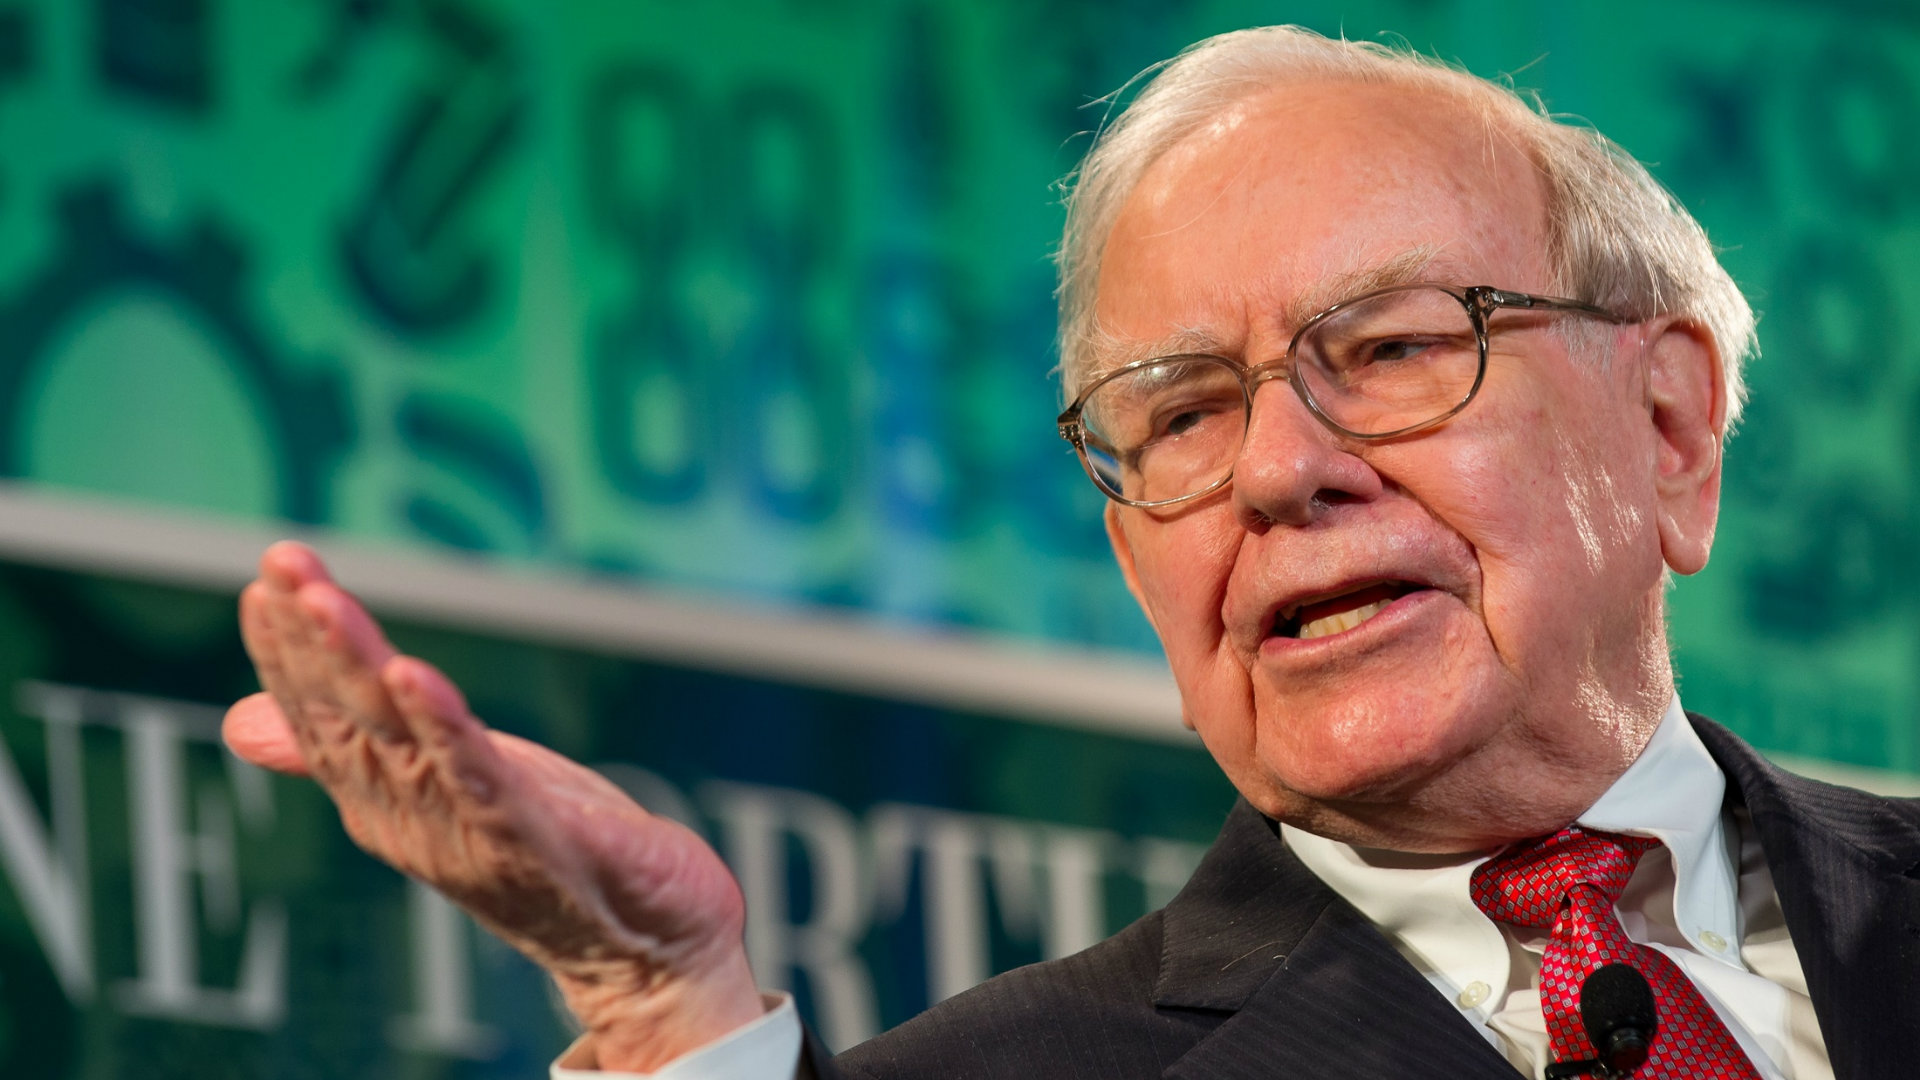 Modojo | Warren Buffett Believes Wearables Are A 'Safe Bet'